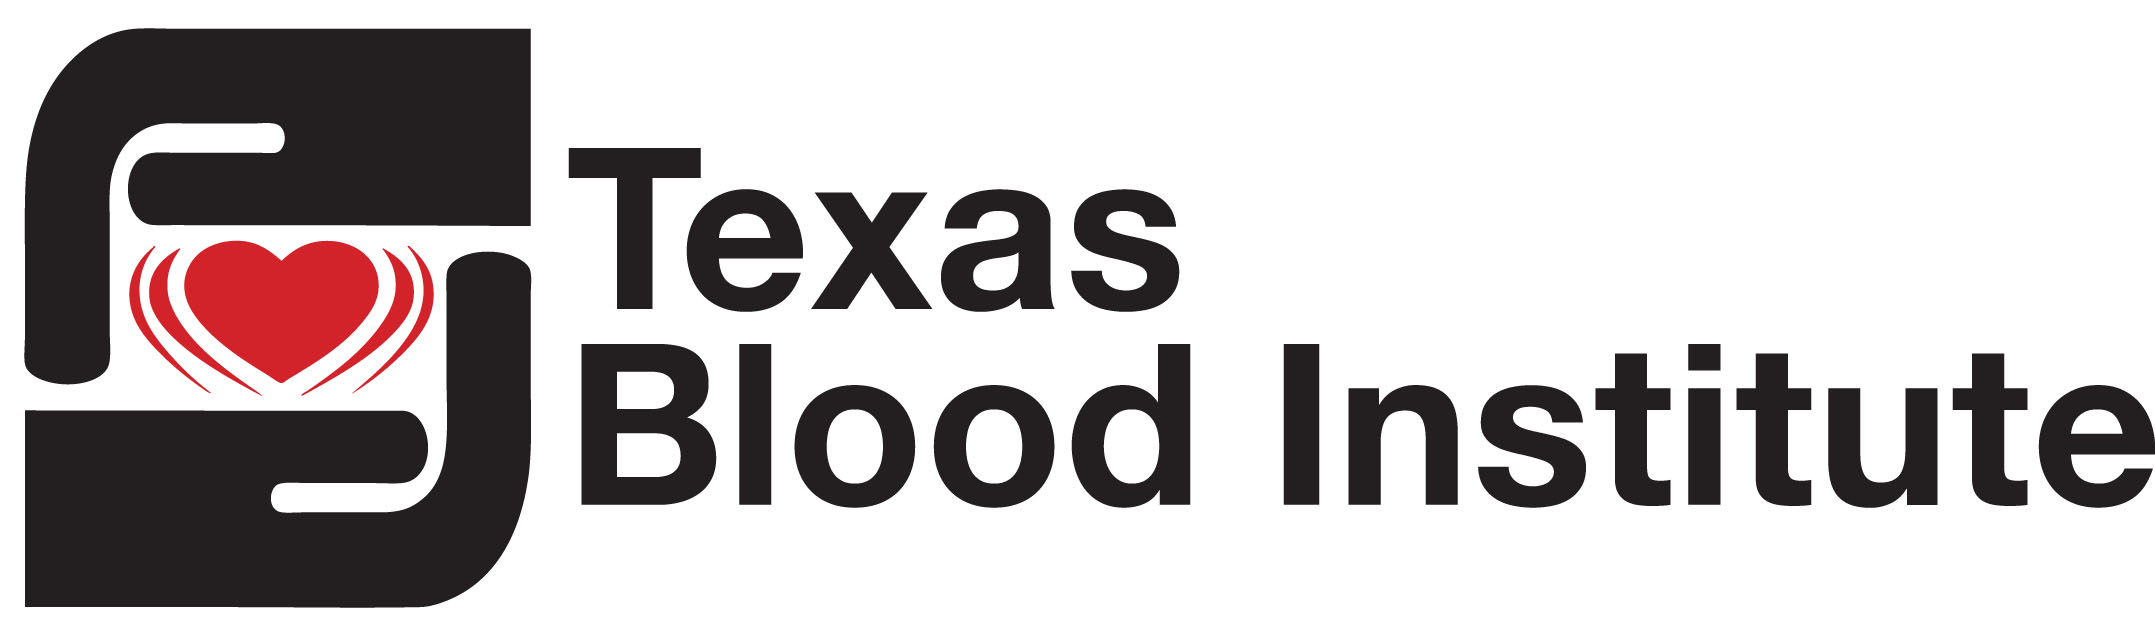 Texas Blood Insitiute